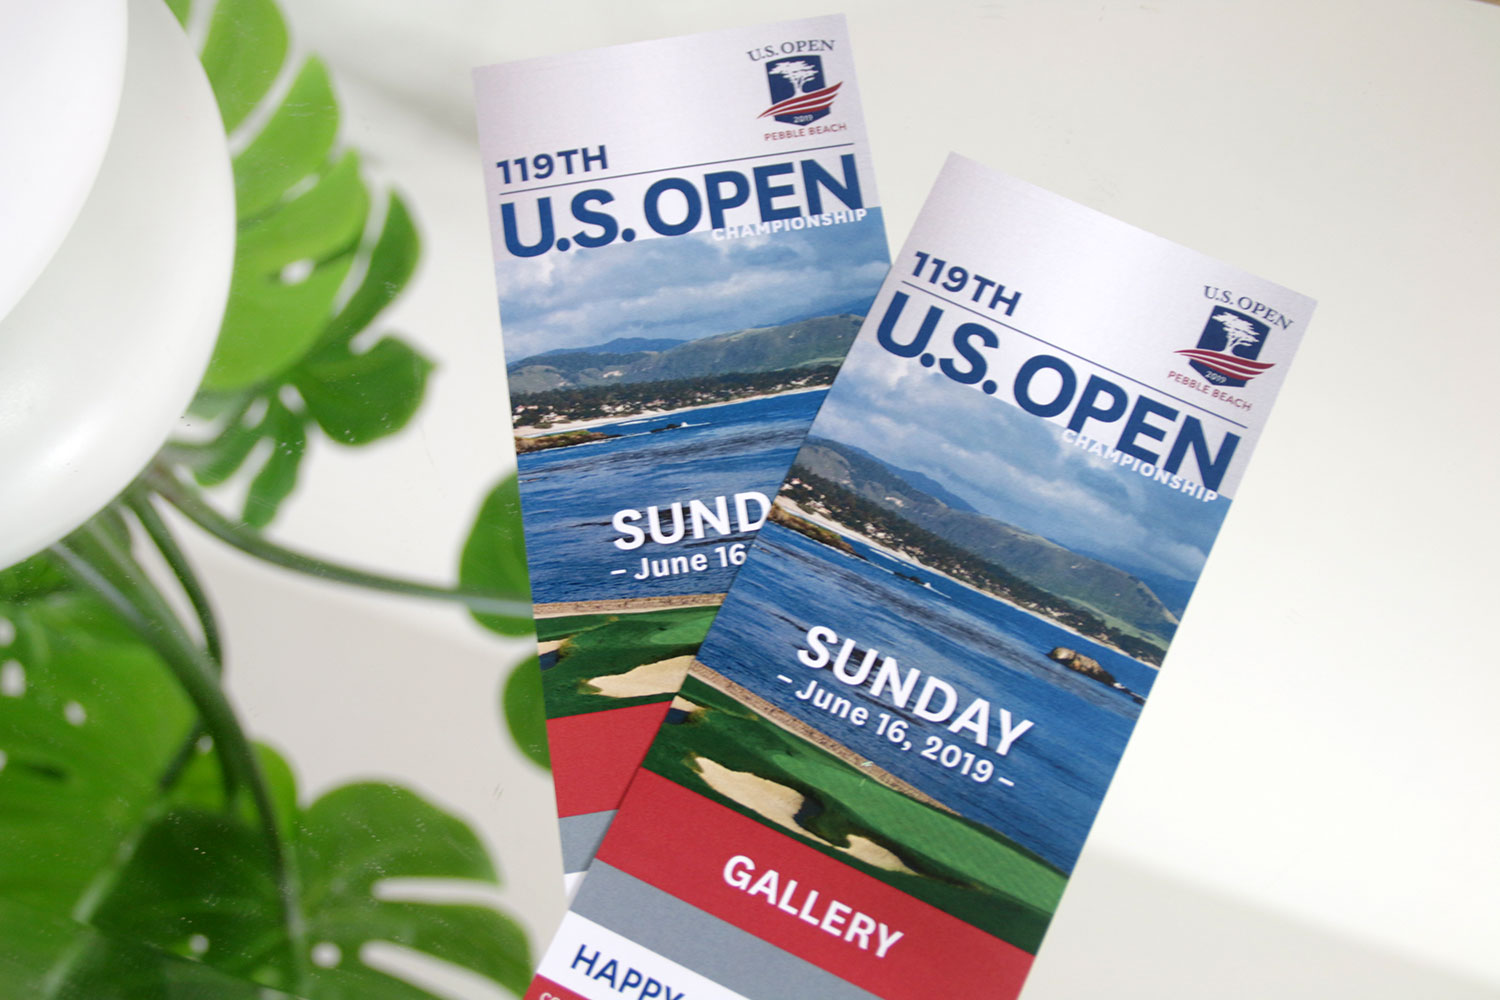 Ticket to 119th U.S. Open Championship